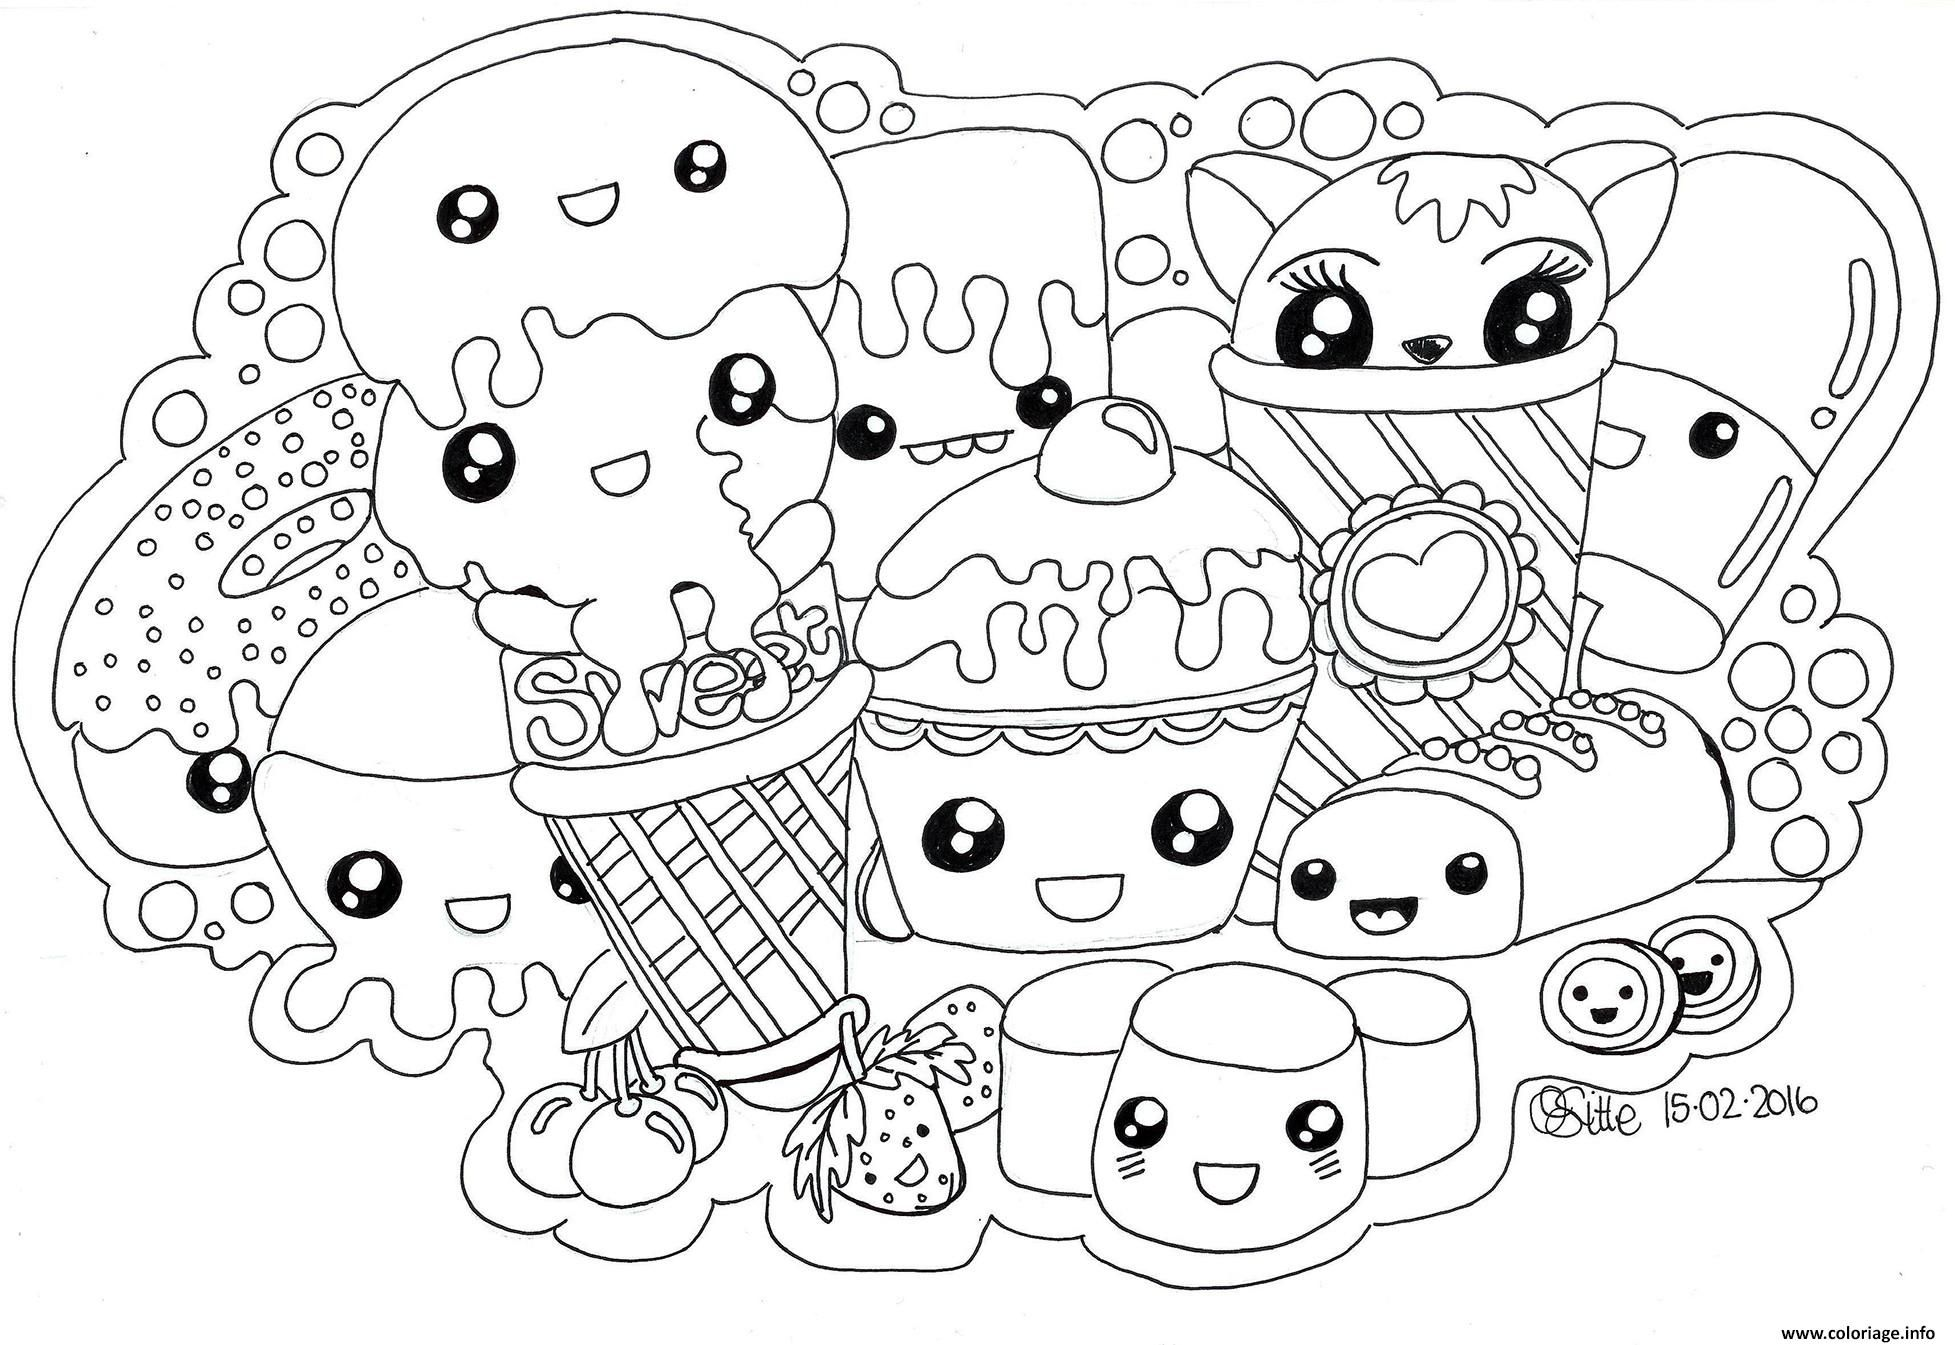 Coloriage Kawaii Sweets Colour Manga Cute Dessin à Imprimer